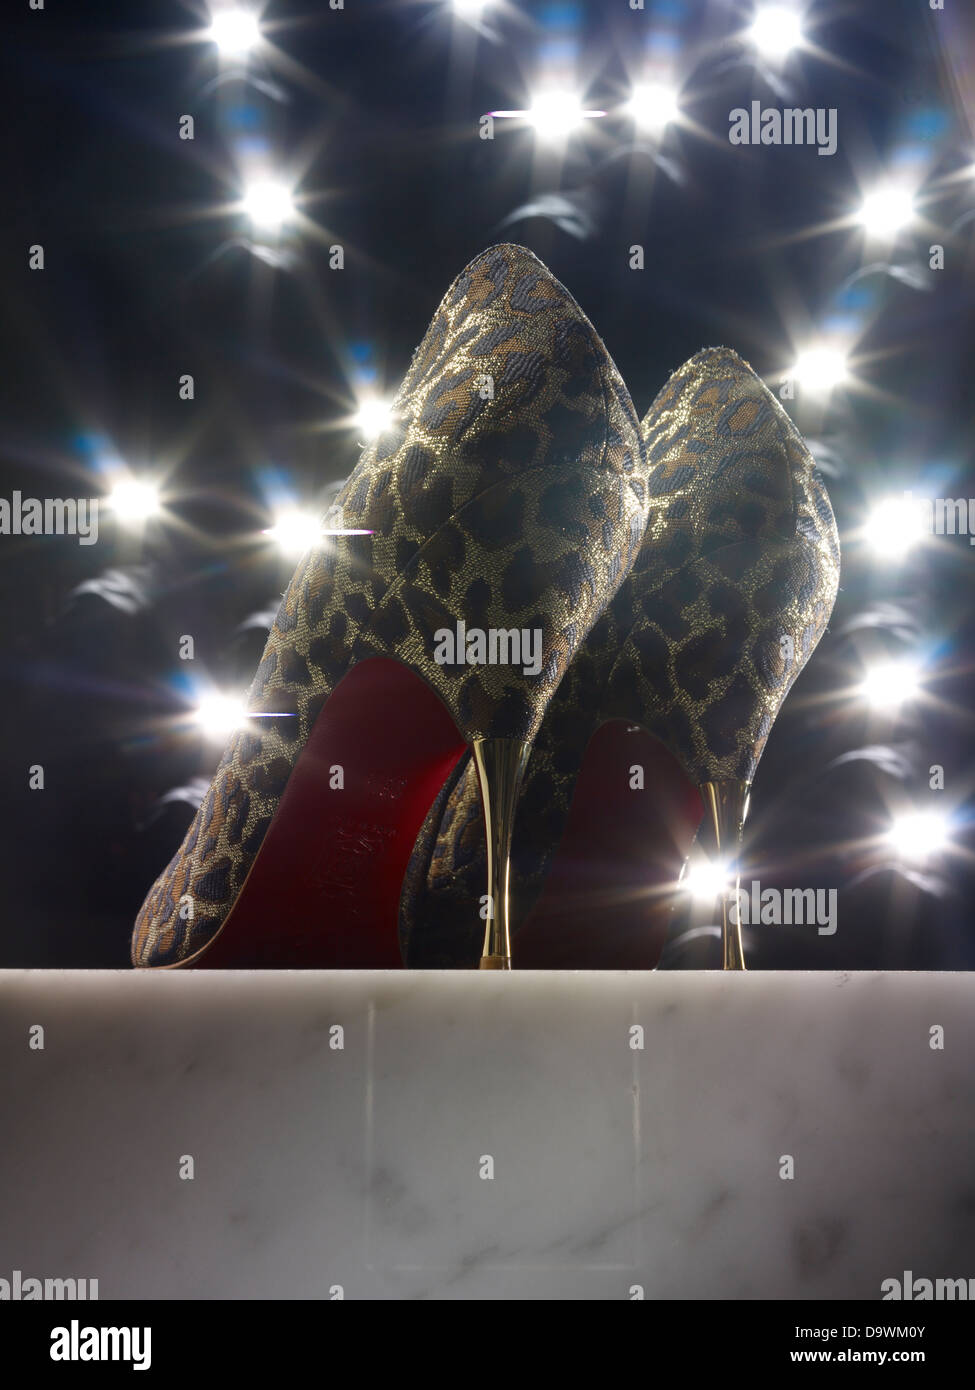 les talons hauts Photo Stock